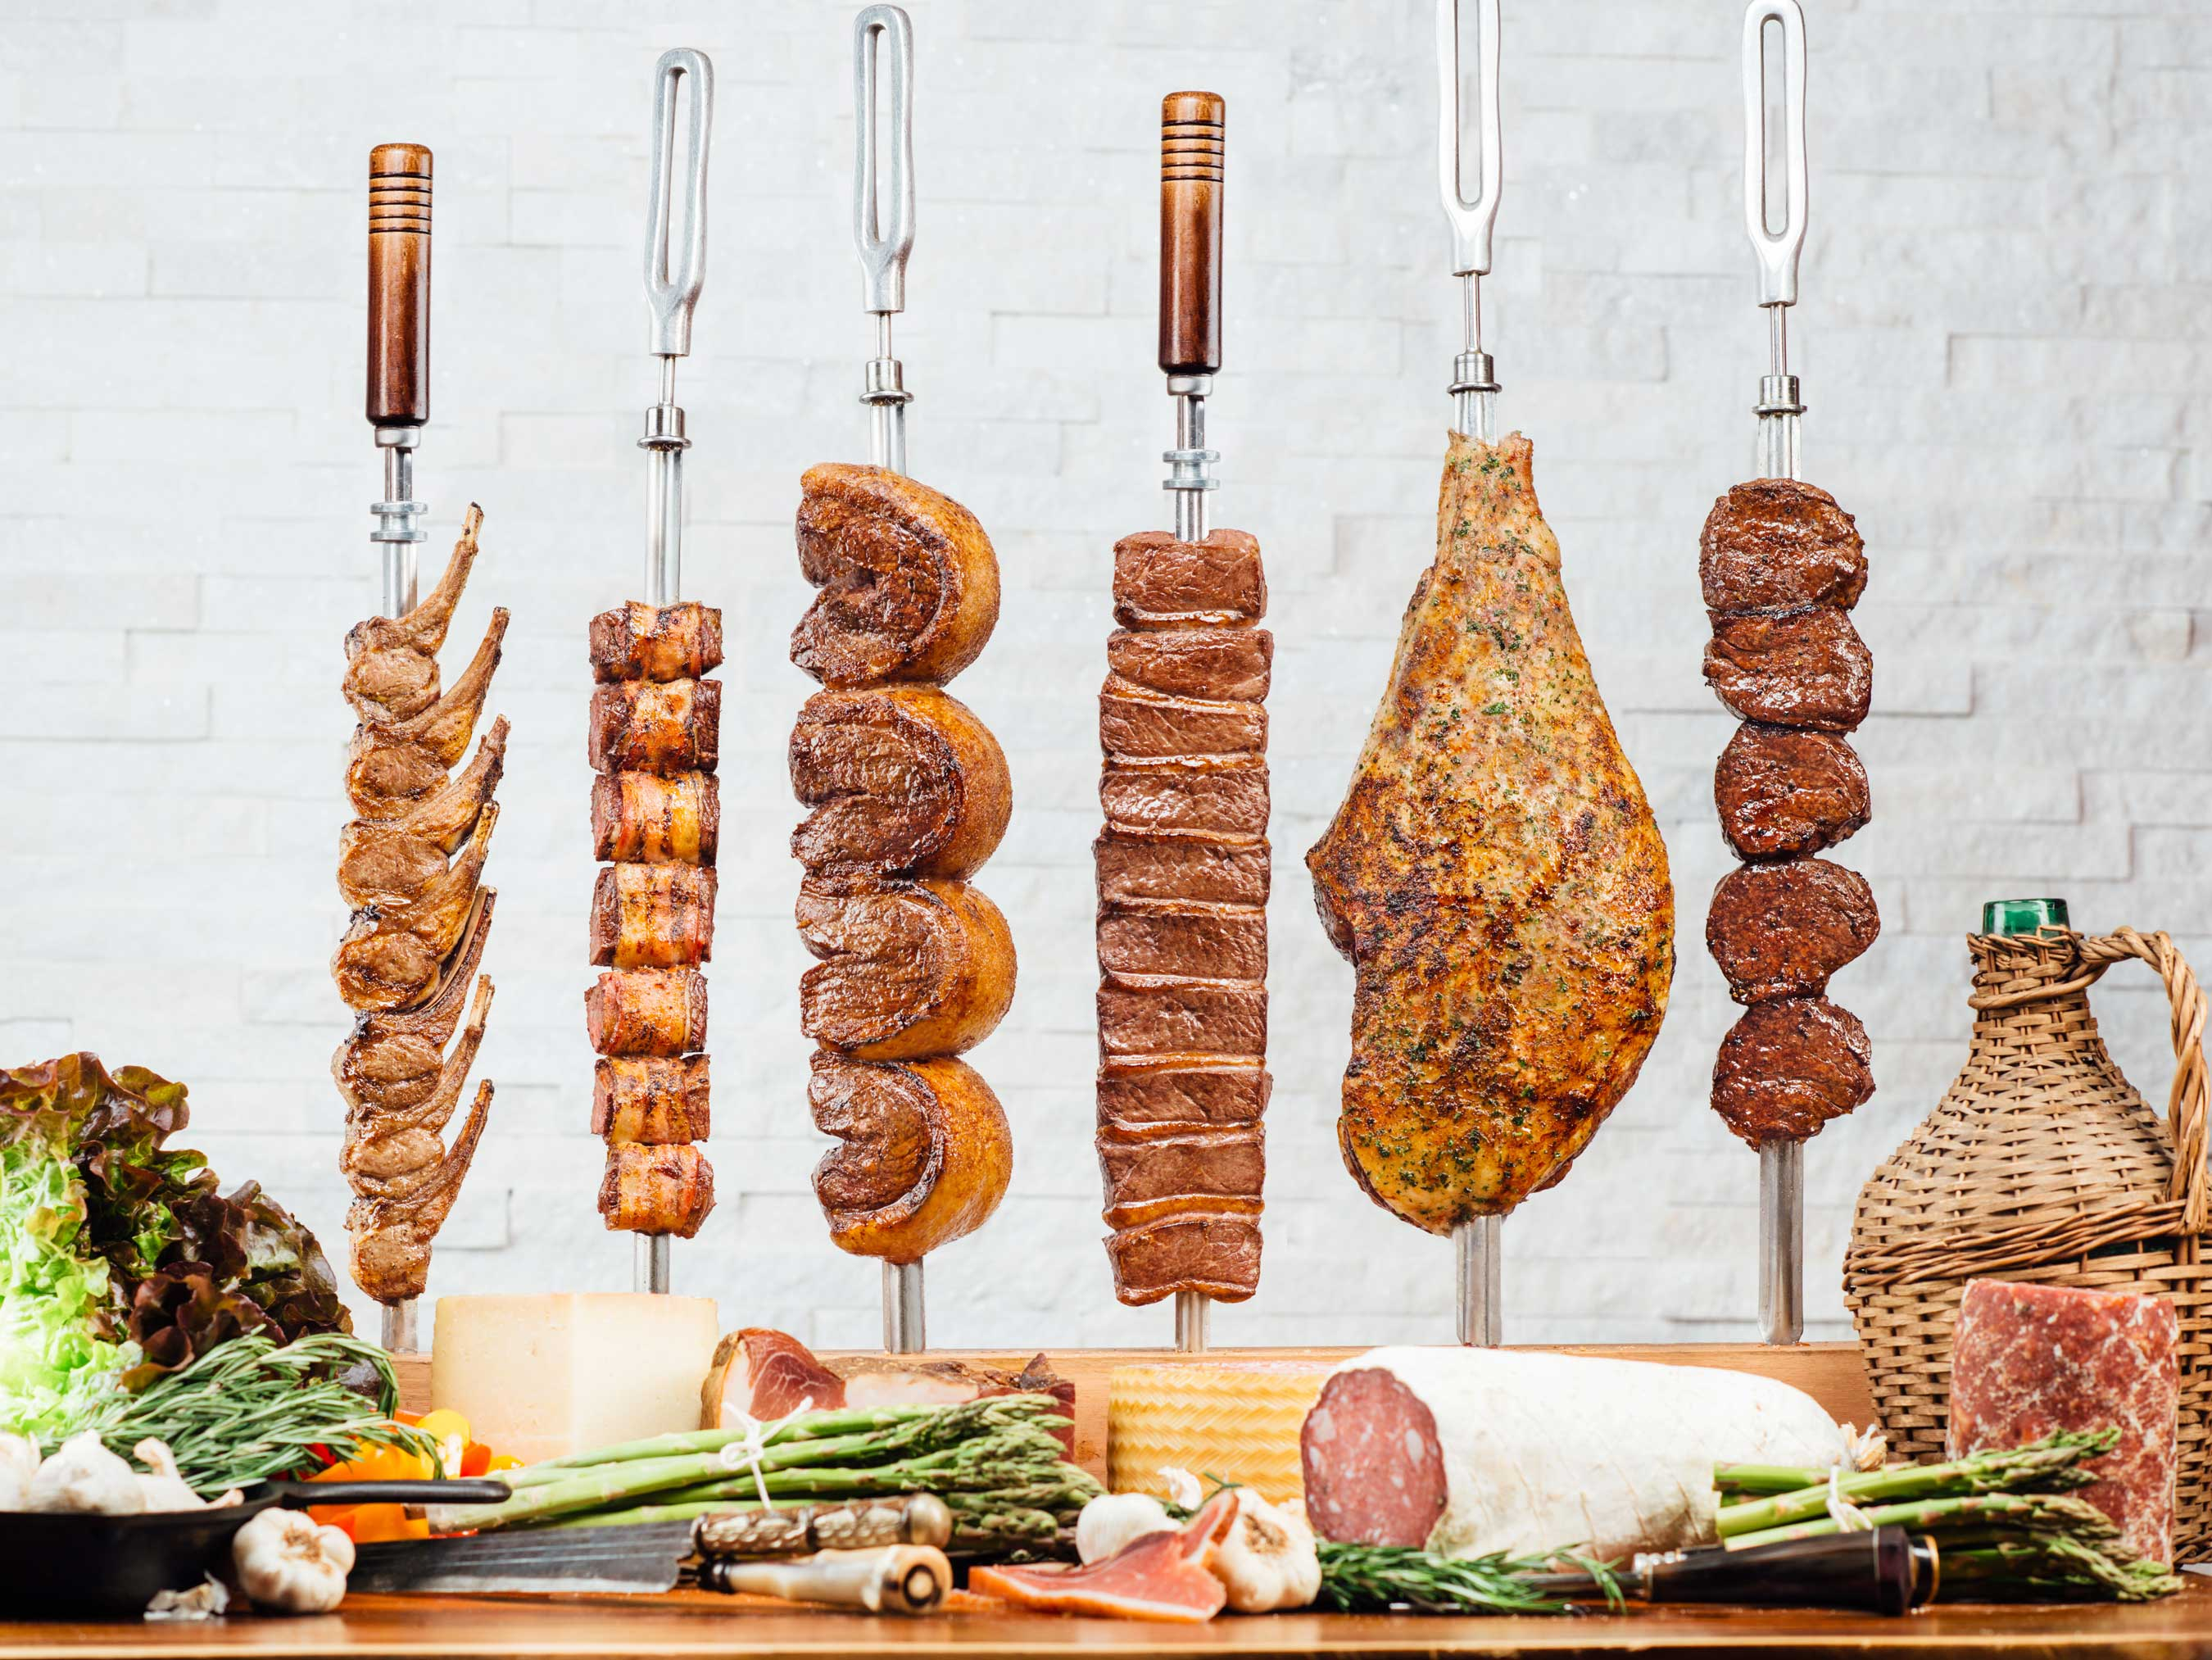 Texas de Brazil meats are all roasted over natural wood charcoal, a method passed down through generations of gauchos from Southern Brazil, then carved tableside during the rodizio-style dining experience.